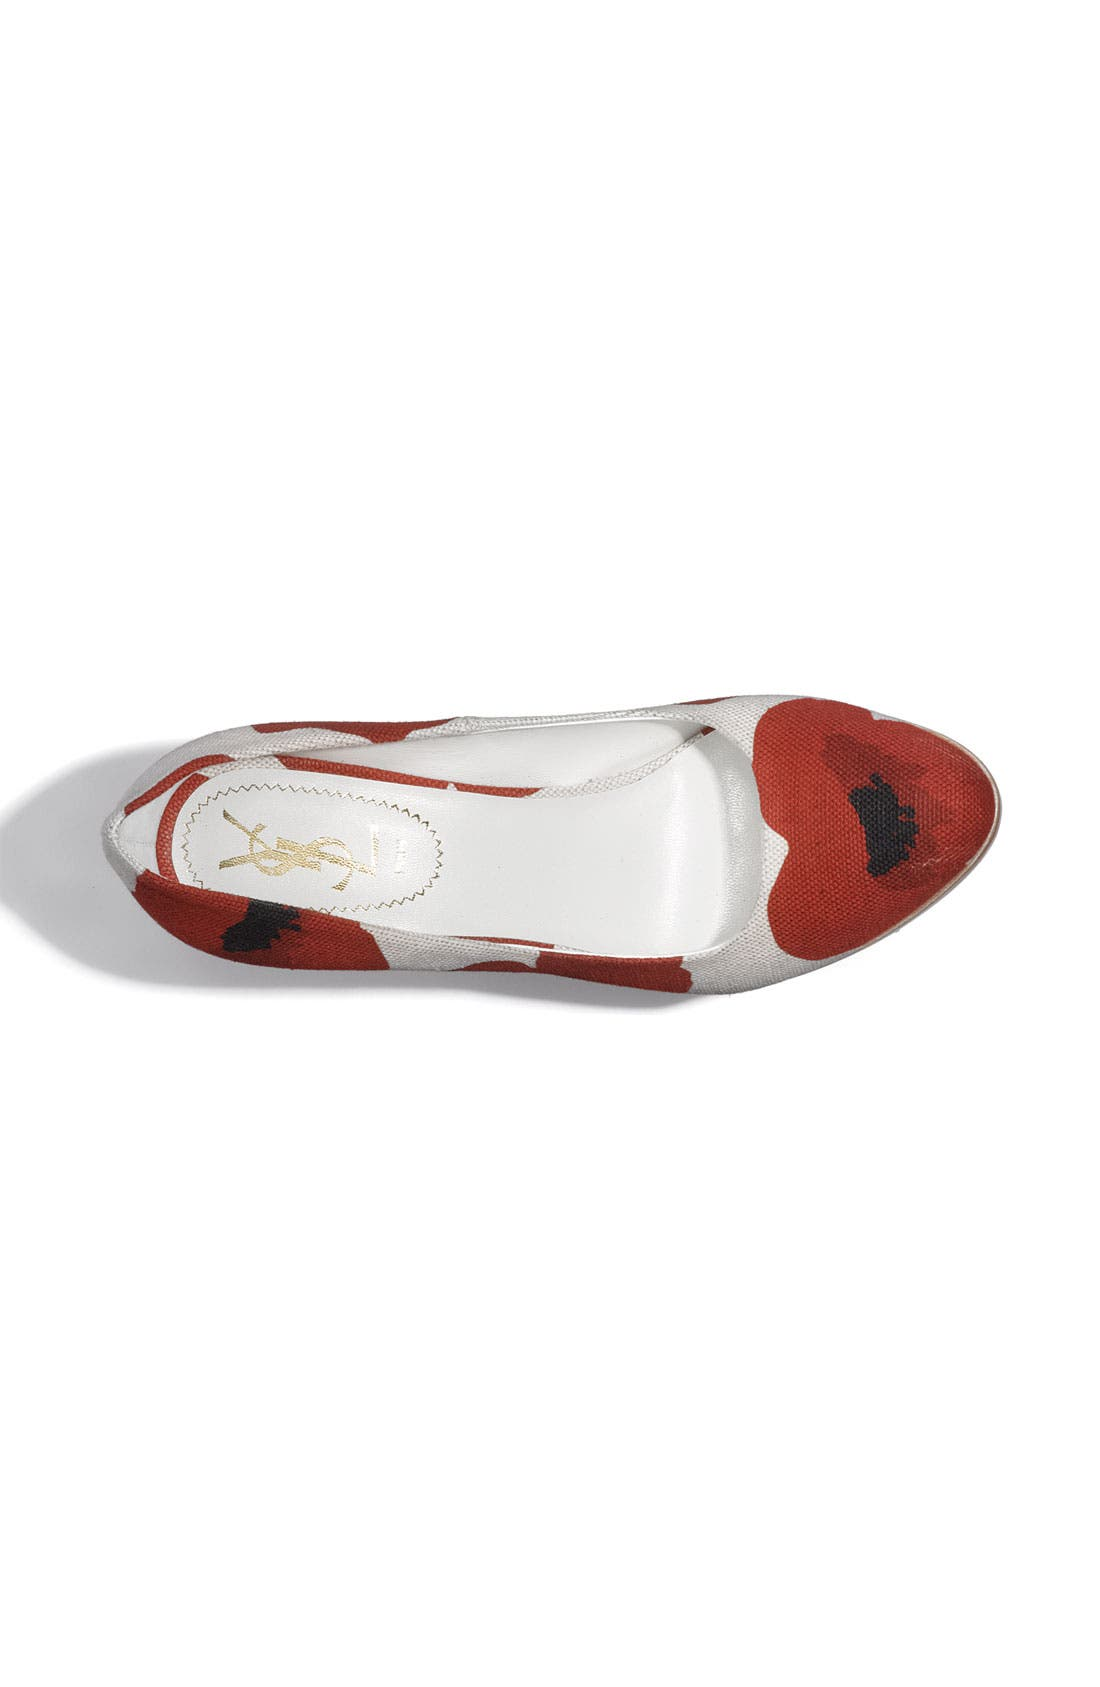 Poppy Print Wedge Pump,                             Alternate thumbnail 2, color,                             600